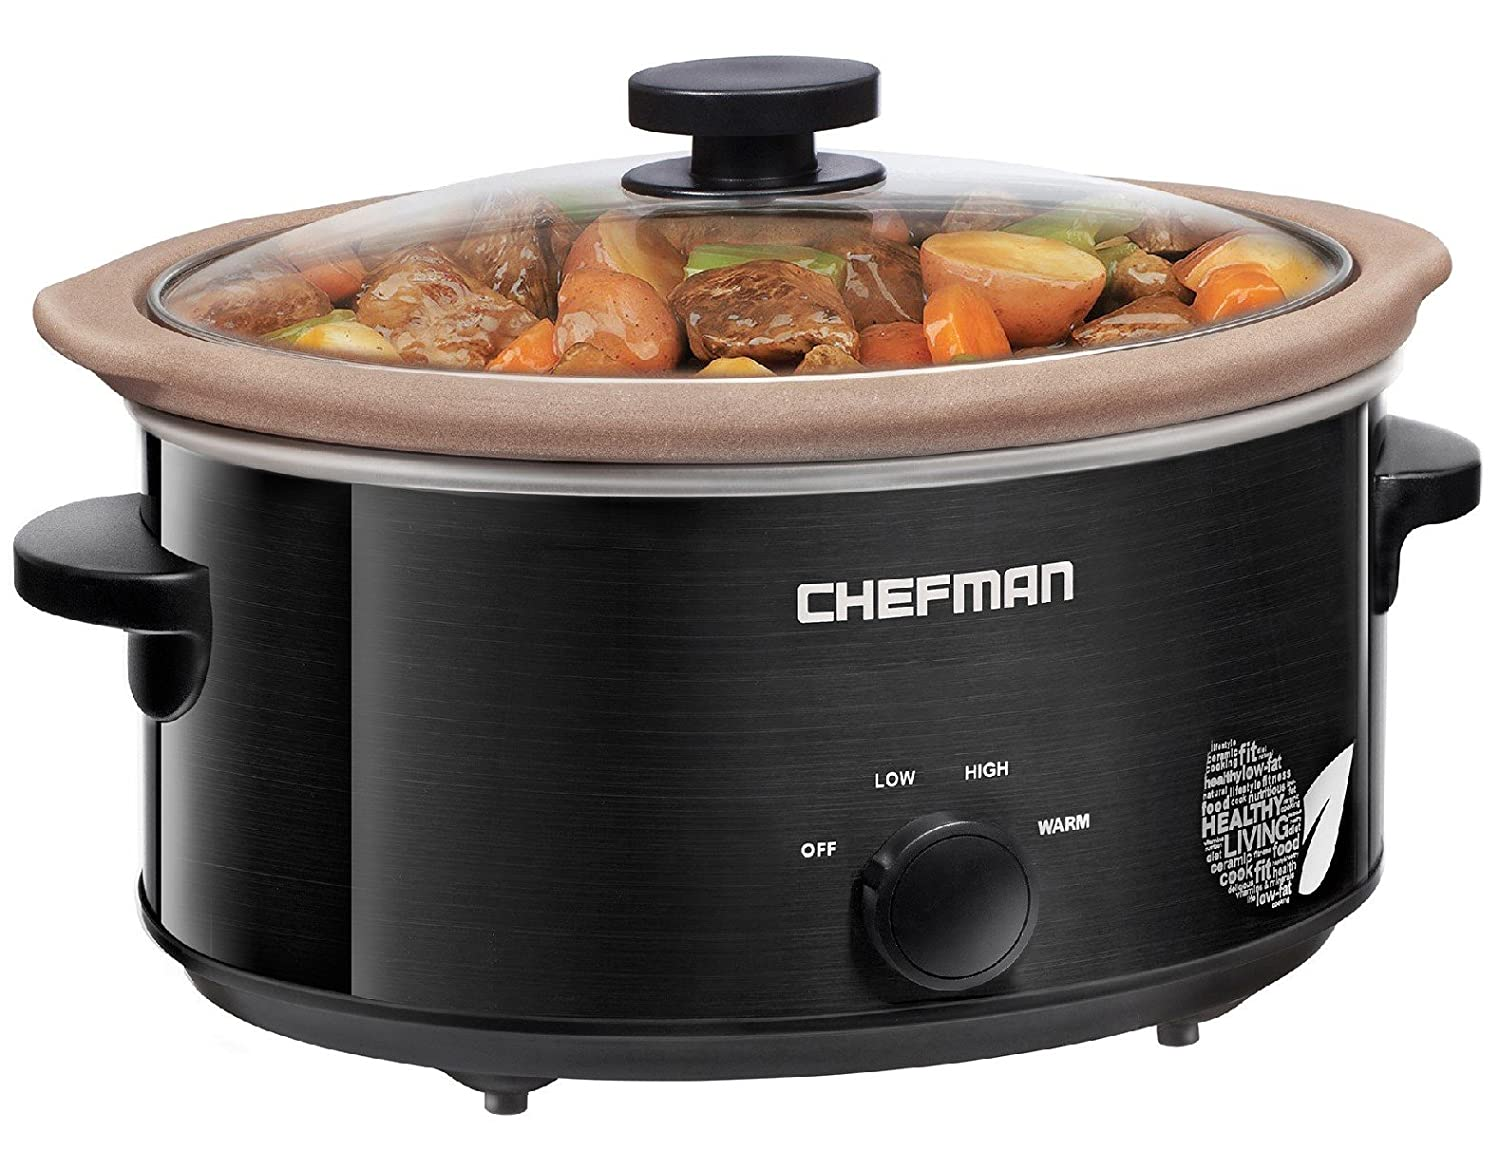 Chefman Slow Cooker, All Natural / Glaze-Free Pot, Stovetop and Oven Safe Crock; the Only Nonstick Paleo Certified XL 5 Qt Slow Cooker